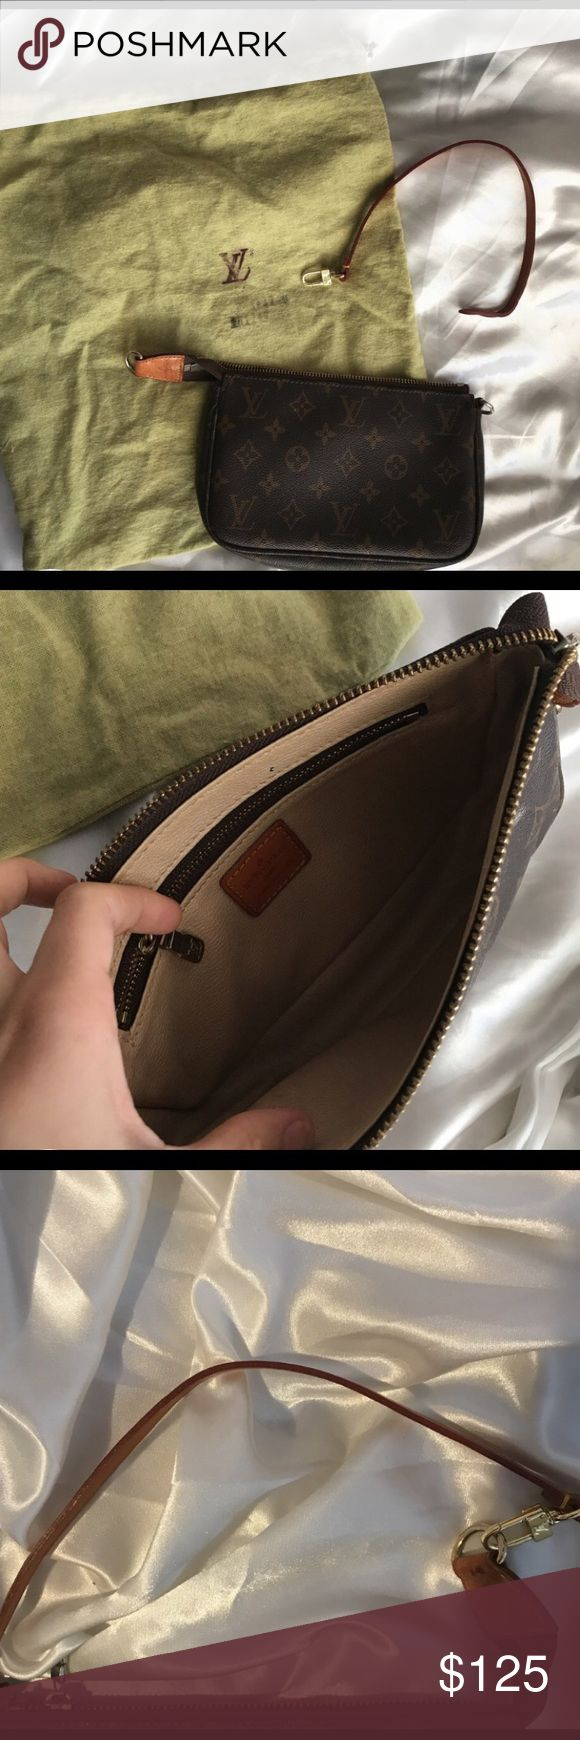 Louis Vuitton clutch small Louis Vuitton clutch/handbag  love this bag so much but it's time for a new one no damage, it's just used. Louis Vuitton Bags Clutches & Wristlets